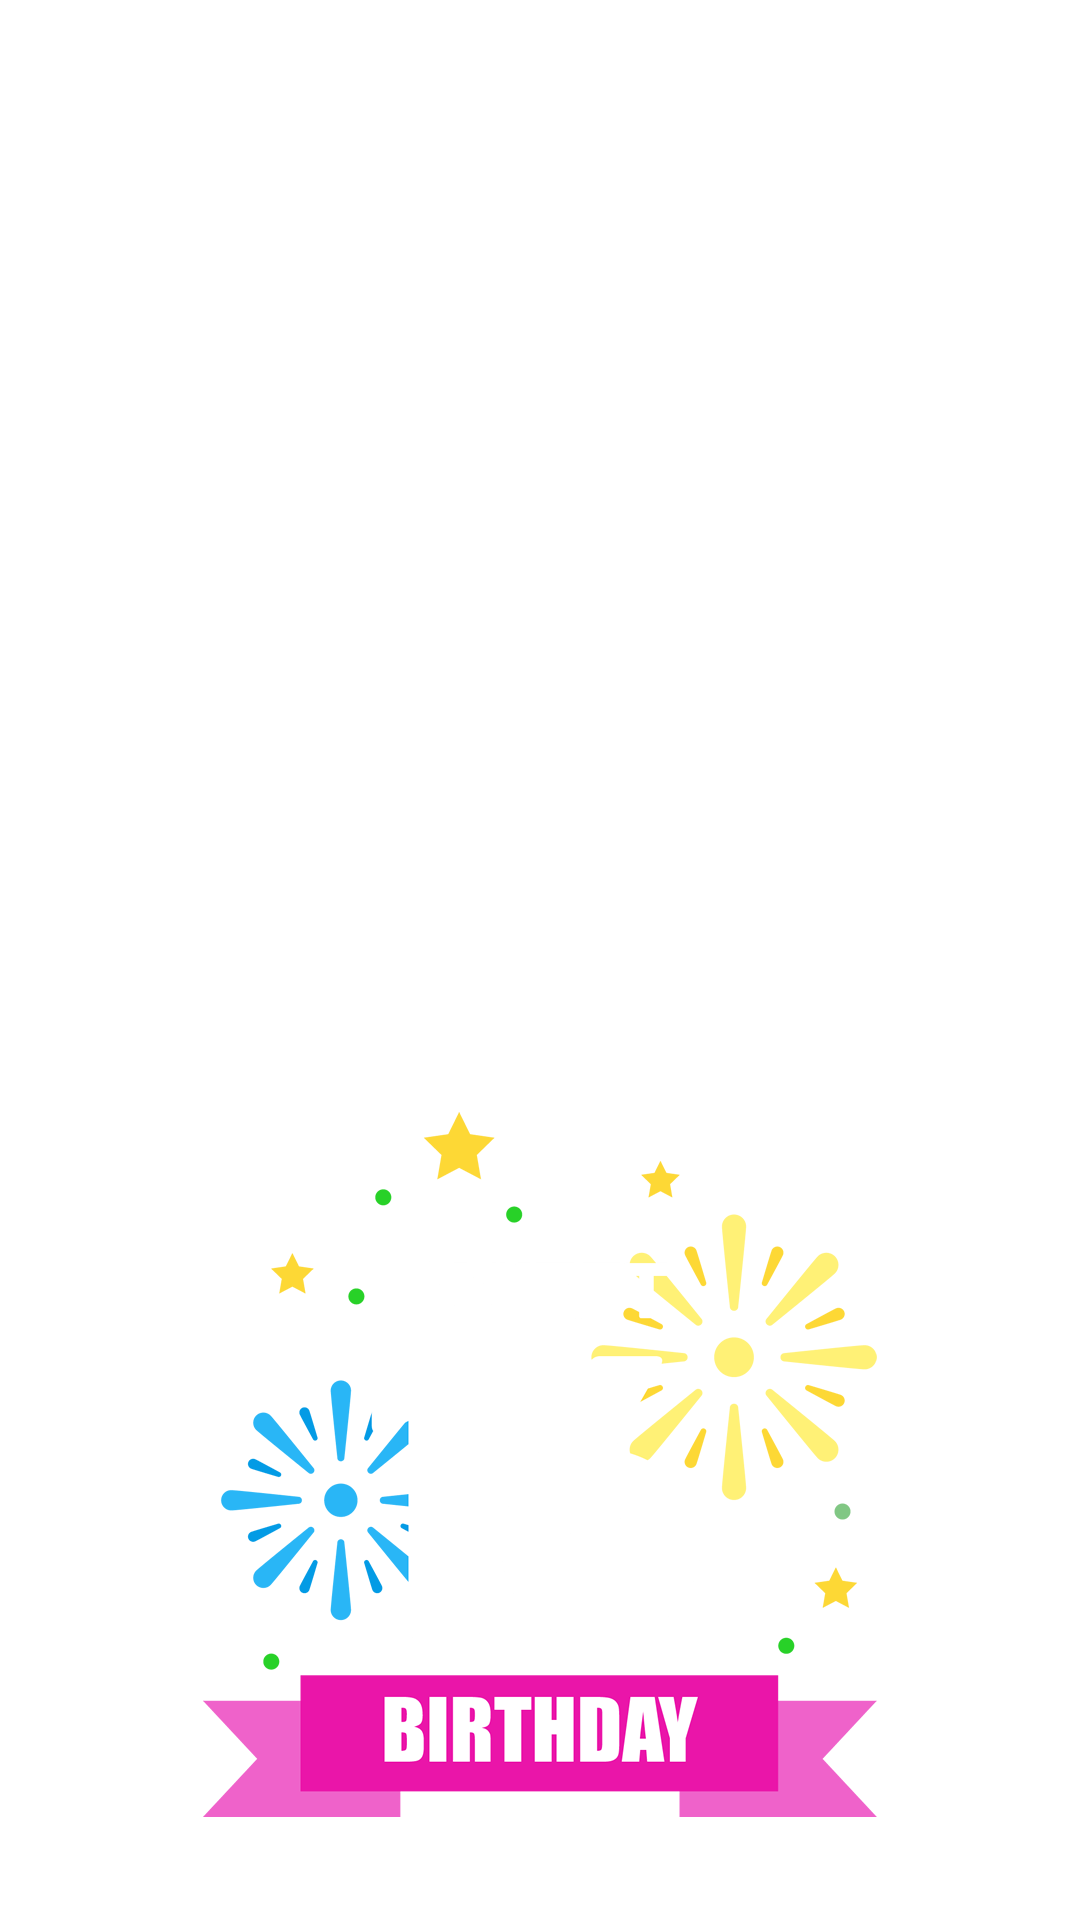 Birthday geofilter clipart images gallery for free download ... graphic royalty free library